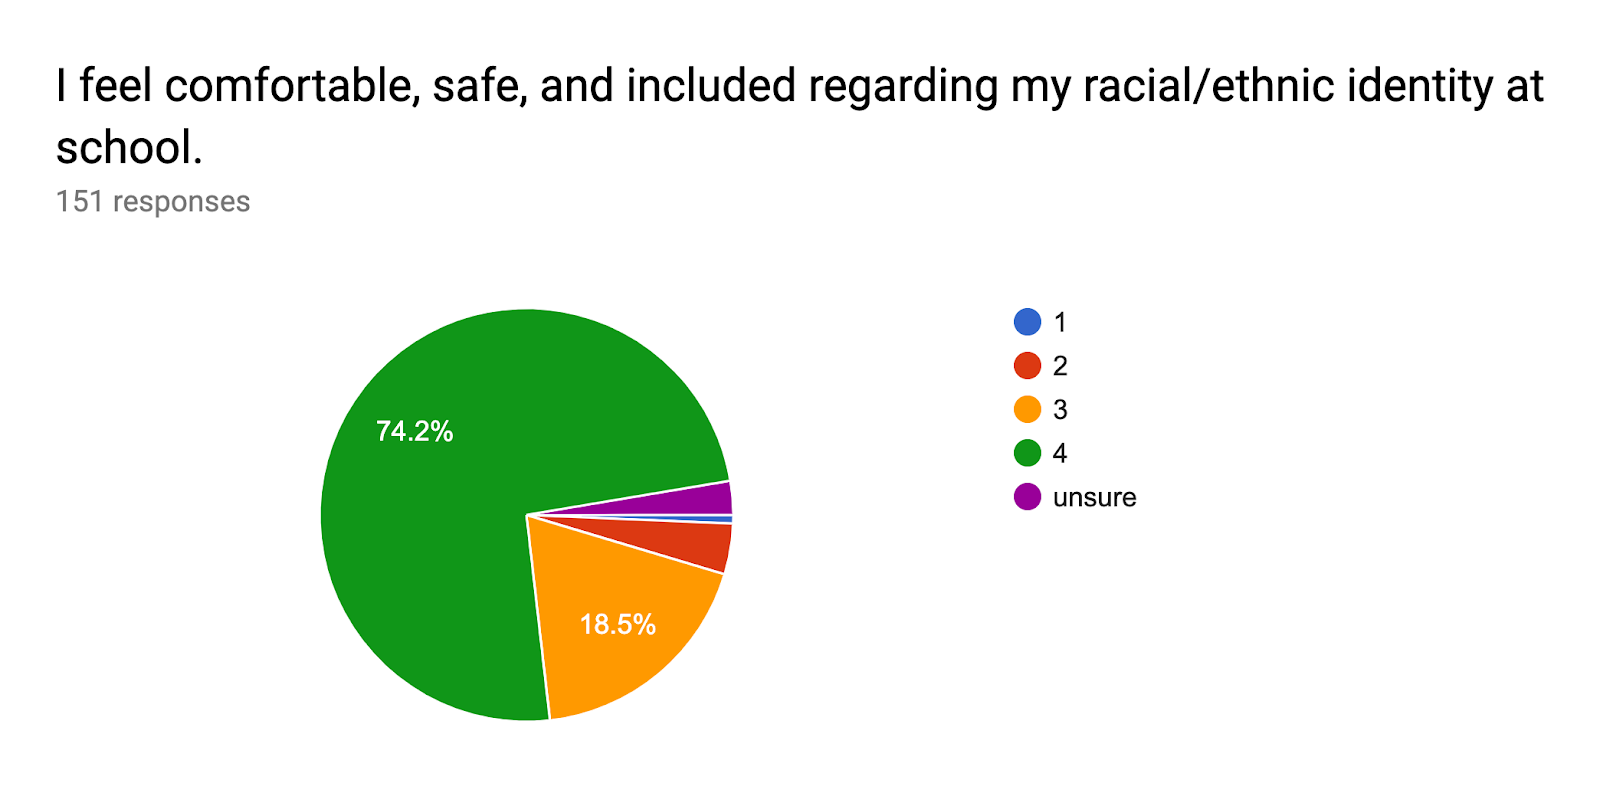 Forms response chart. Question title: I feel comfortable, safe, and included regarding my racial/ethnic identity at school.. Number of responses: 151 responses.